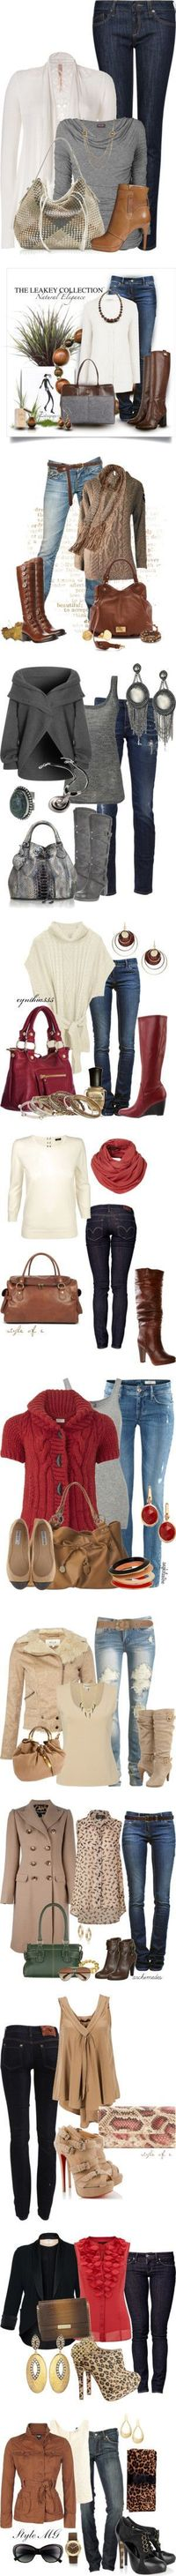 fall outfits...these make me wish I could wear jeans to work. :)